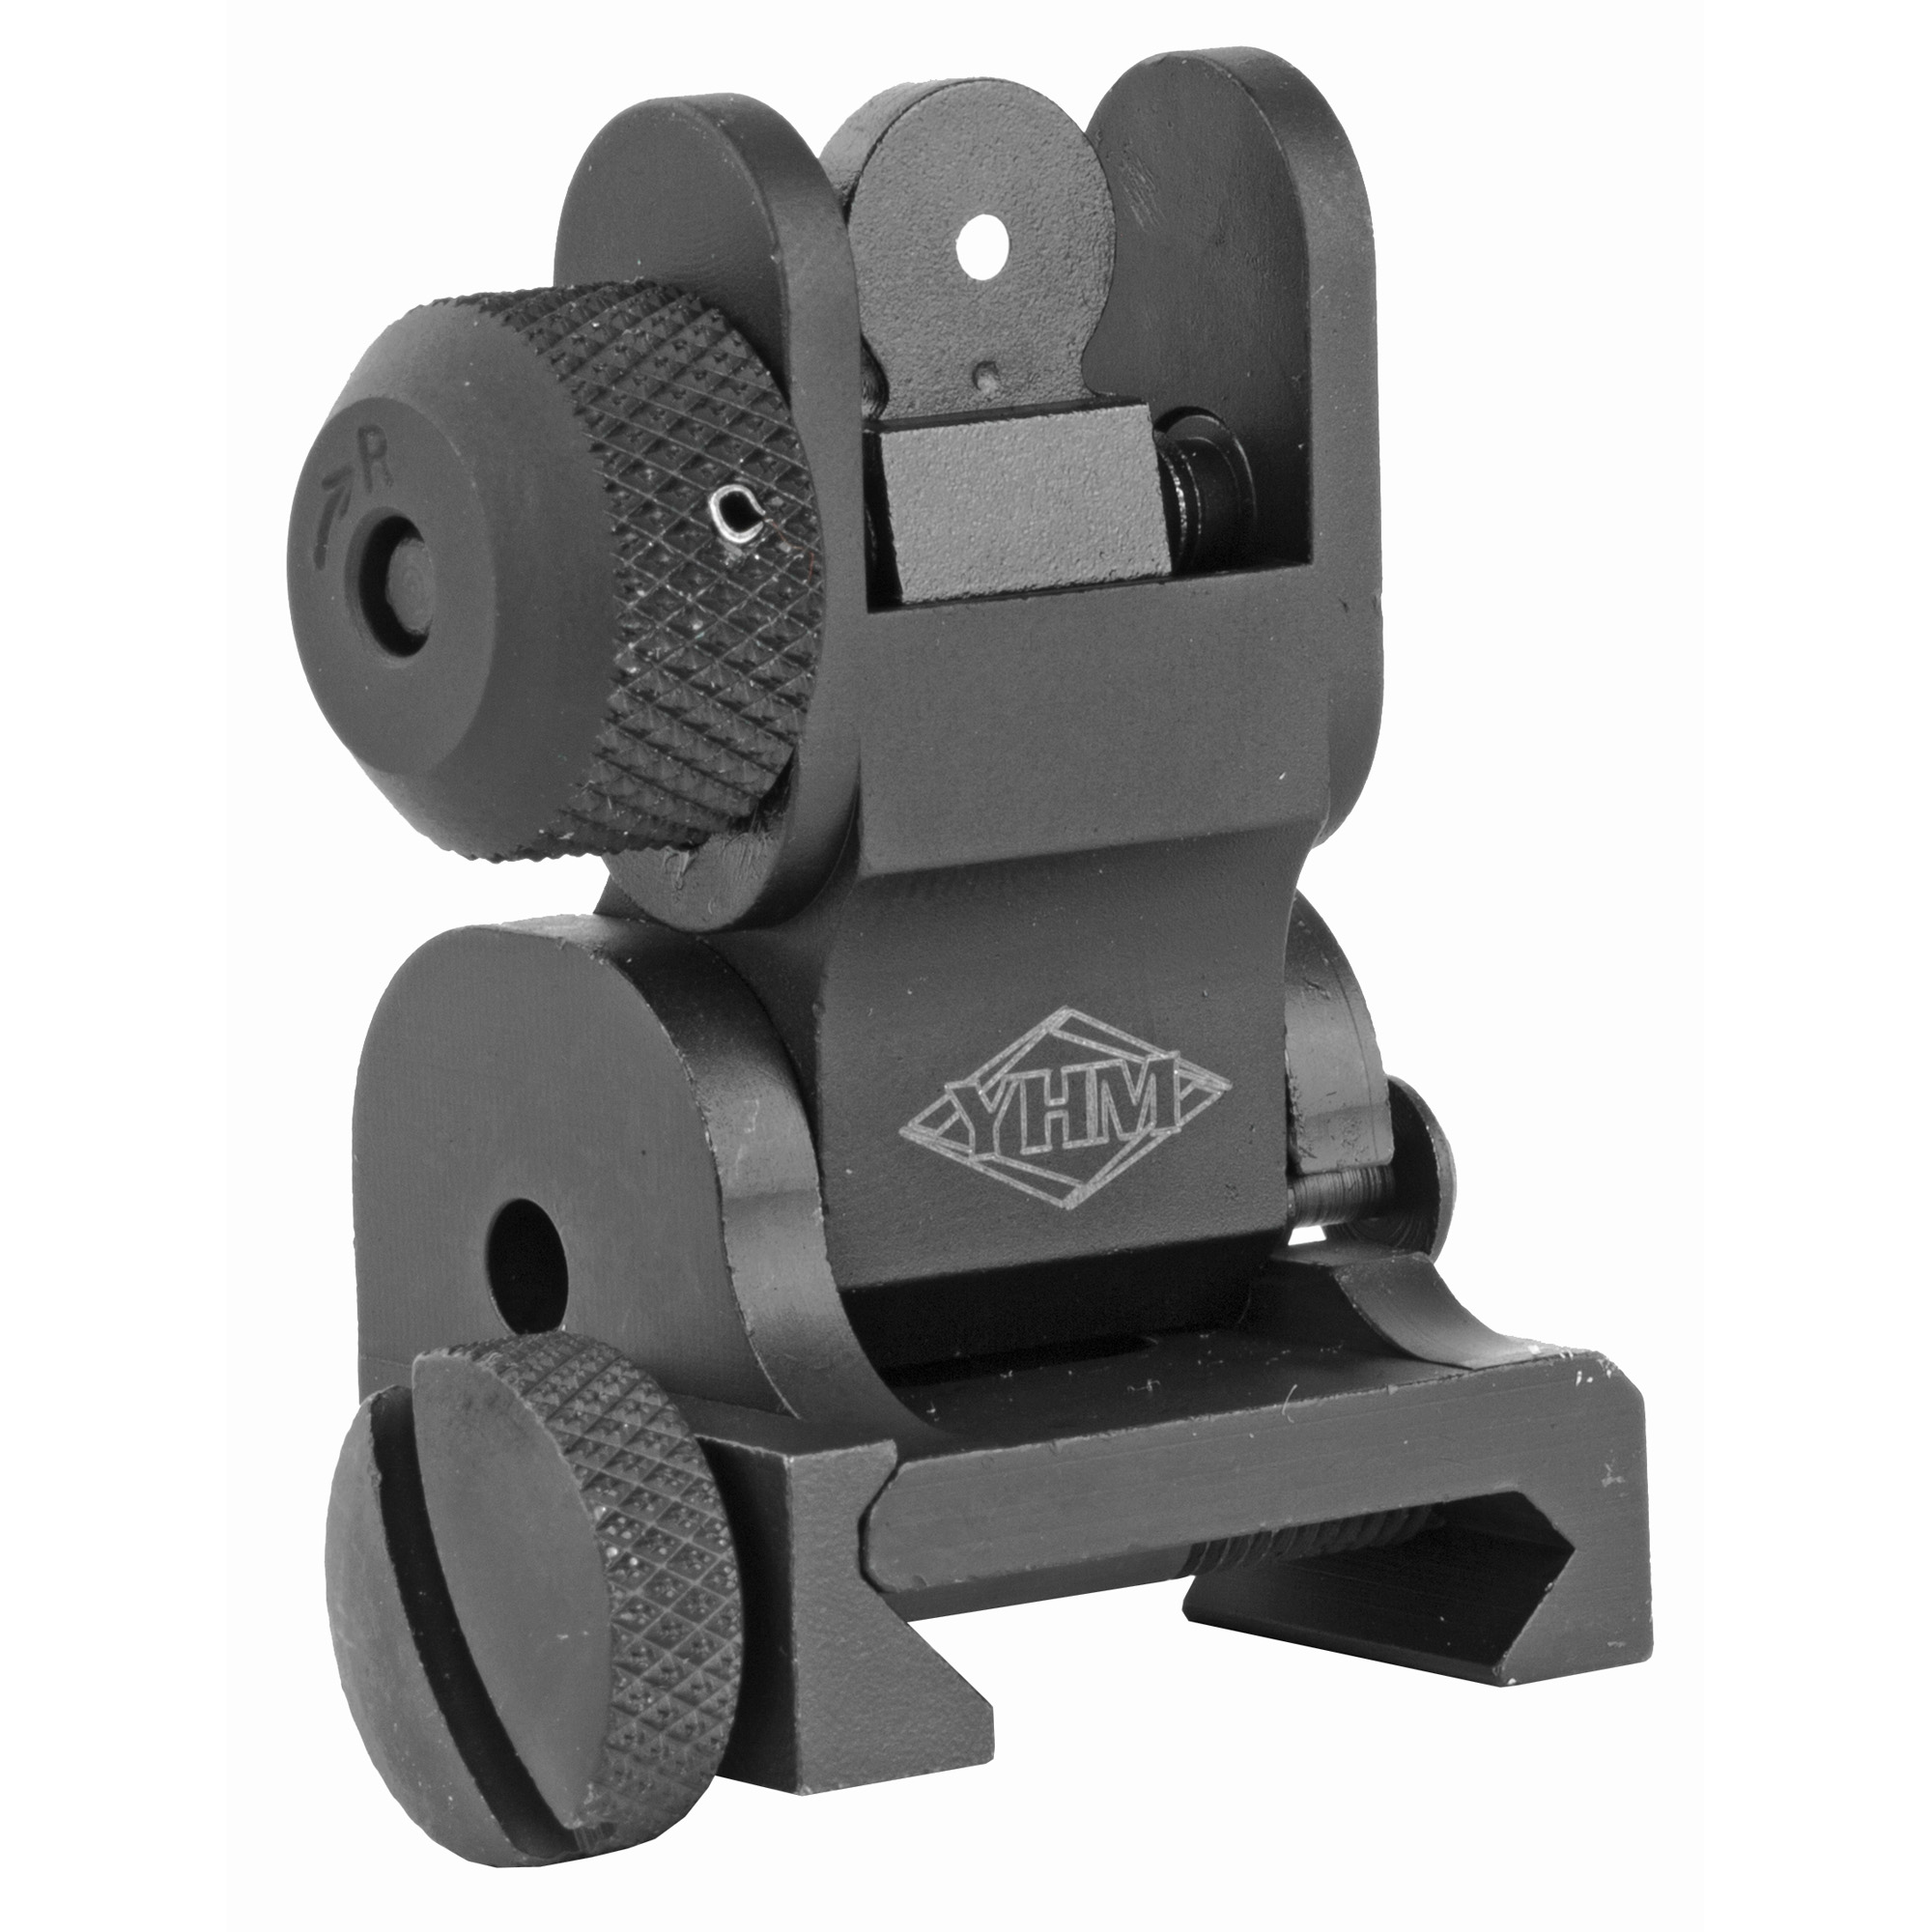 """AR-15 Flip Rear Sight- Features of this sight include: a rugged but lightweight design with a steel base"""" a quick release thumb screw"""" and aluminum stem. Locks in the deployed position with ease and takes up very little space on the upper receiver."""